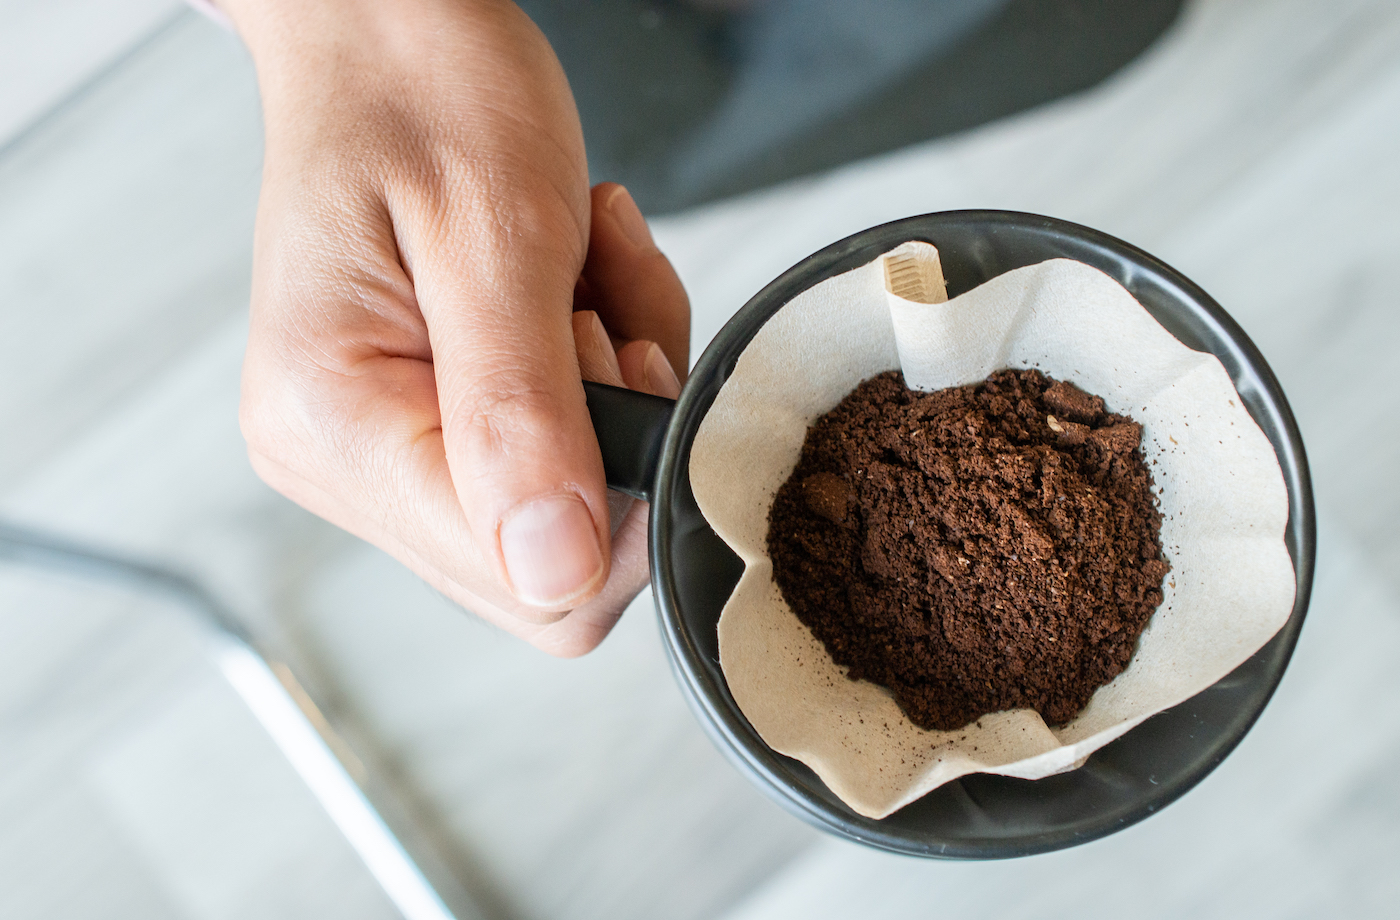 9 uses for coffee grounds you never thought about | Well+Good